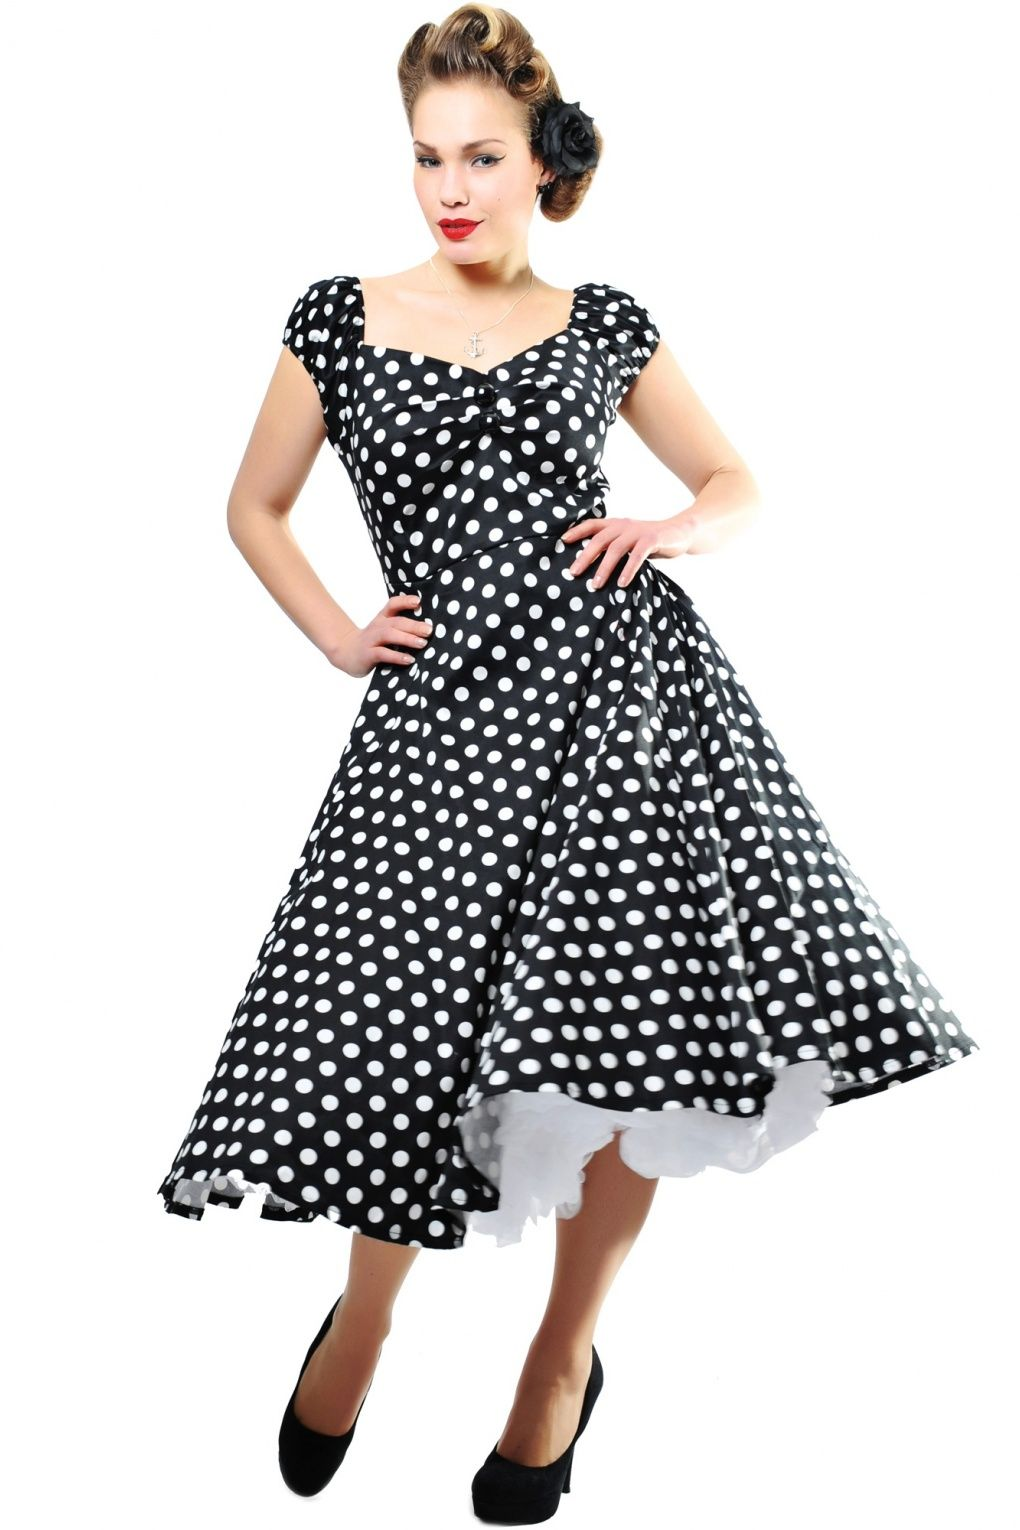 0403a080157 Collectif Clothing - 50s Dolores Doll dress Black White polka swing dress